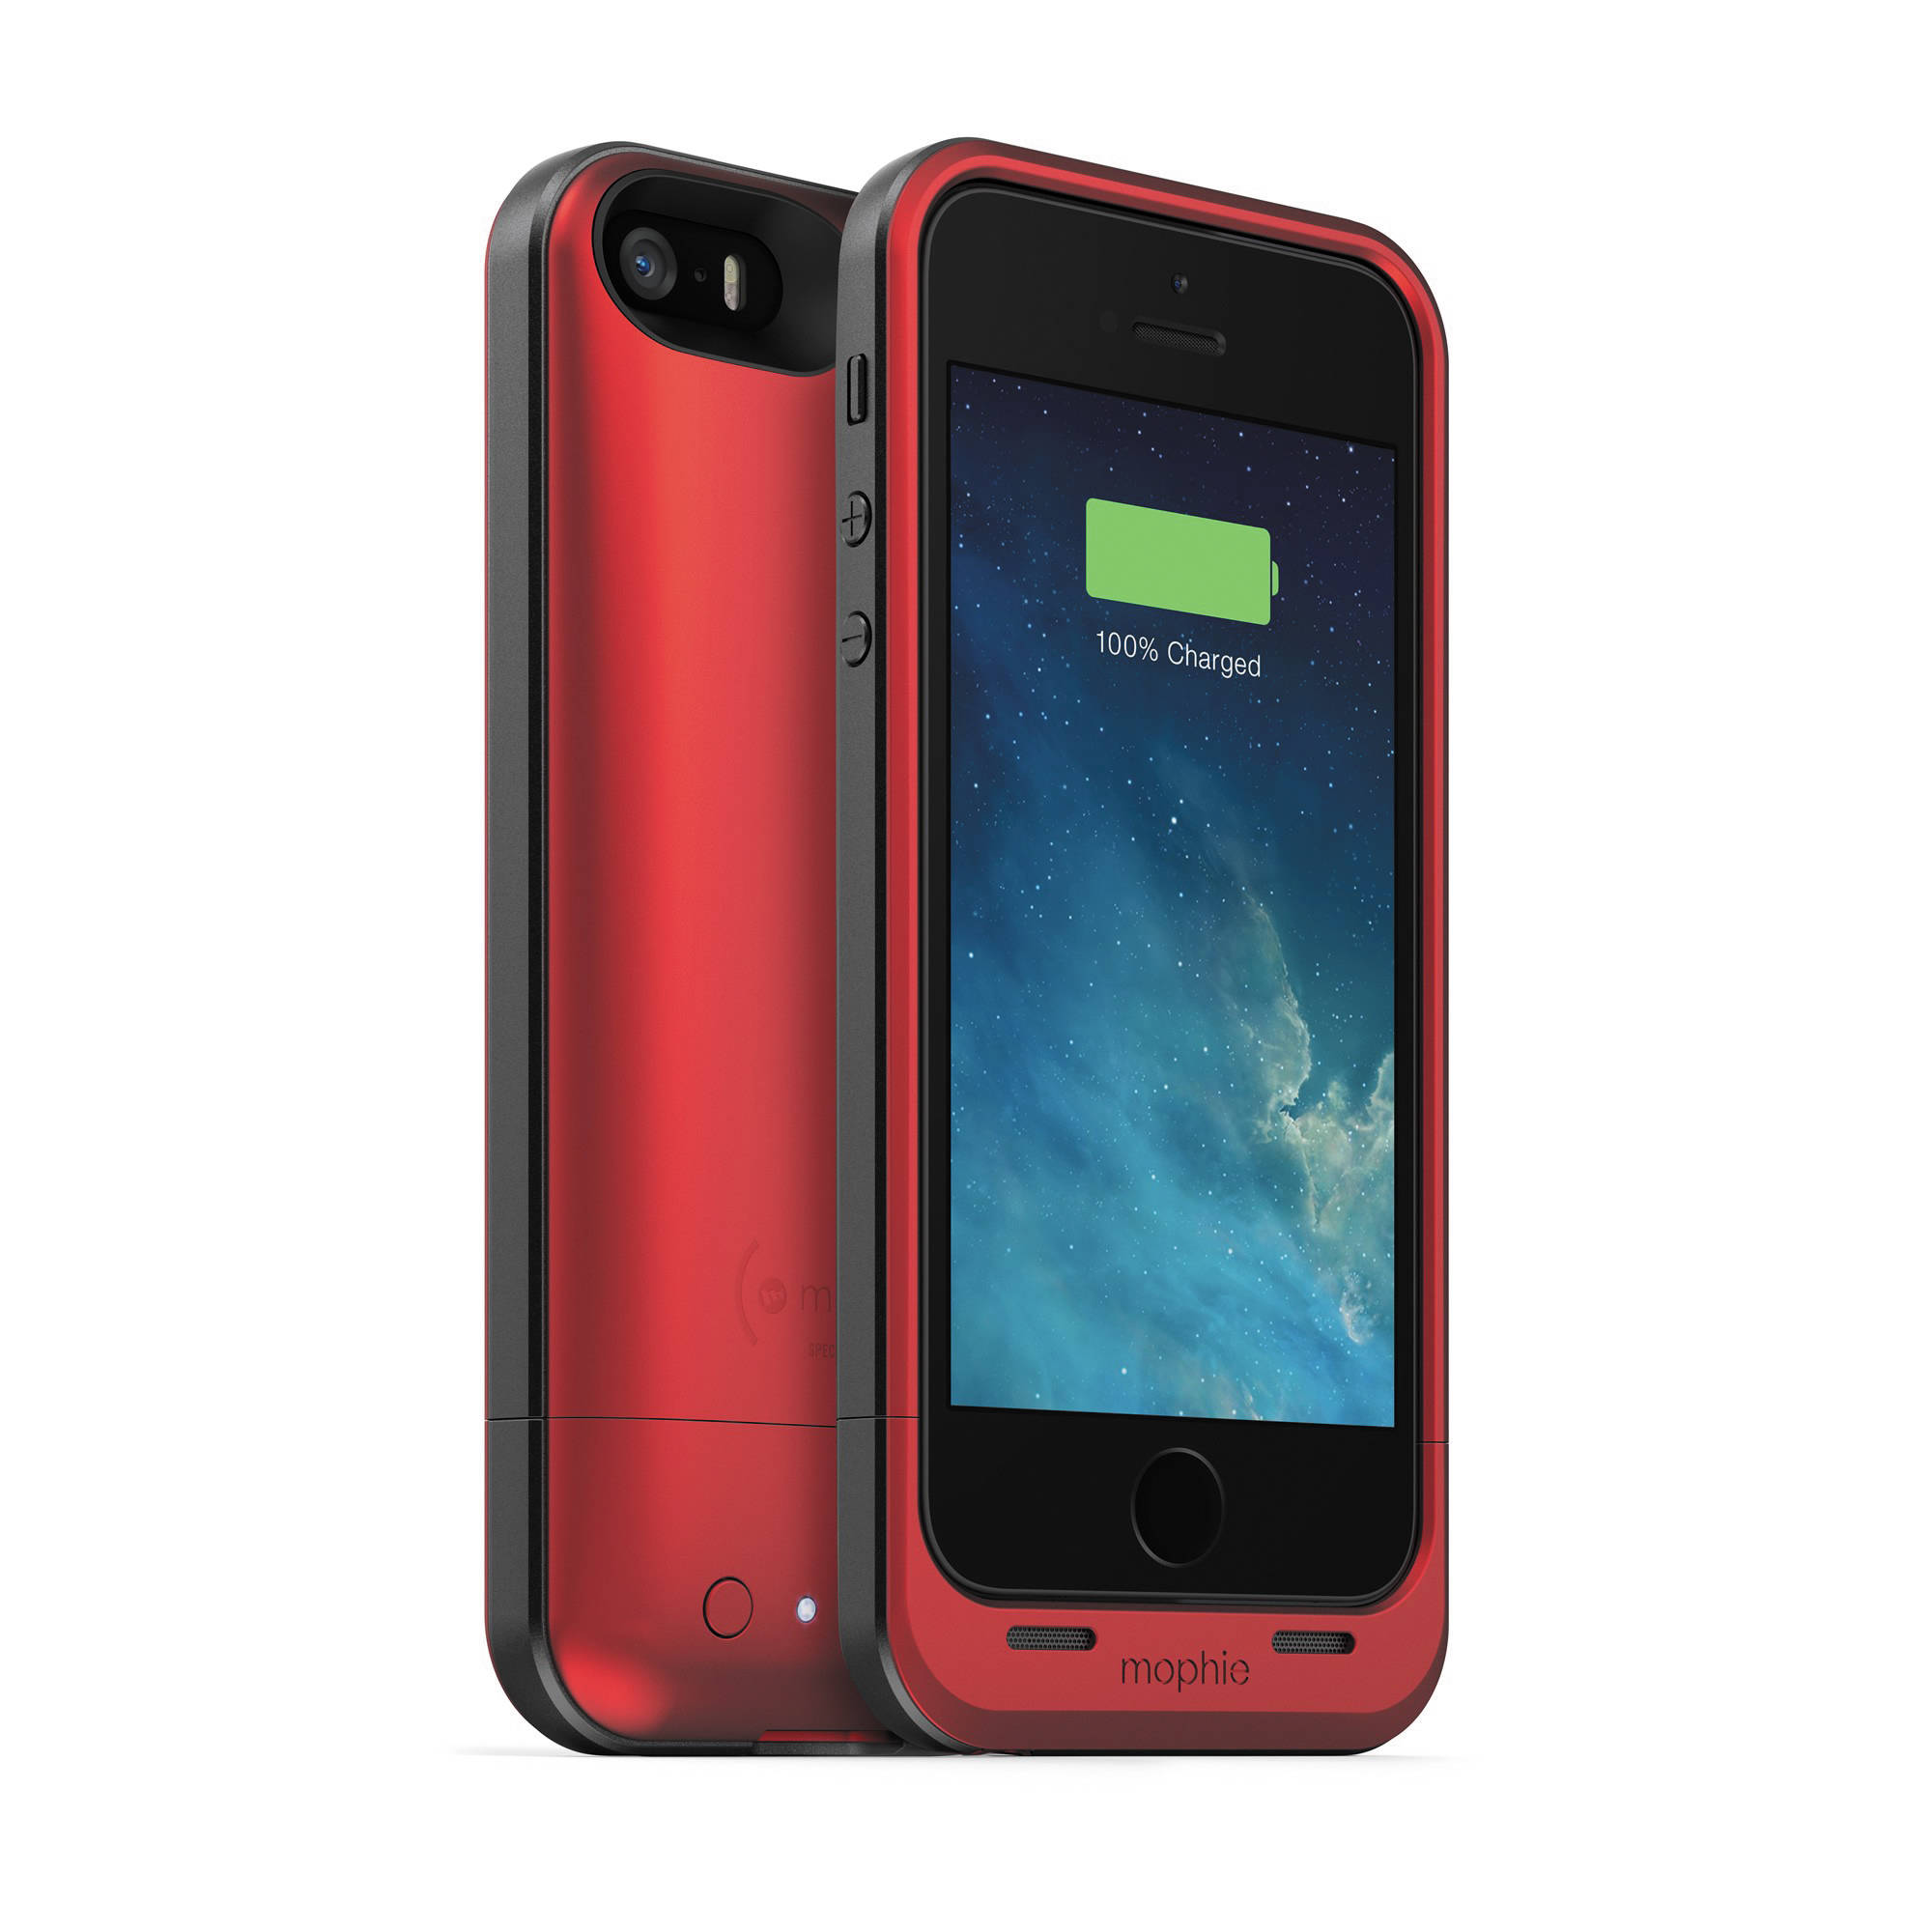 timeless design 99d05 3303d mophie juice pack air for iPhone 6/6s (Red)